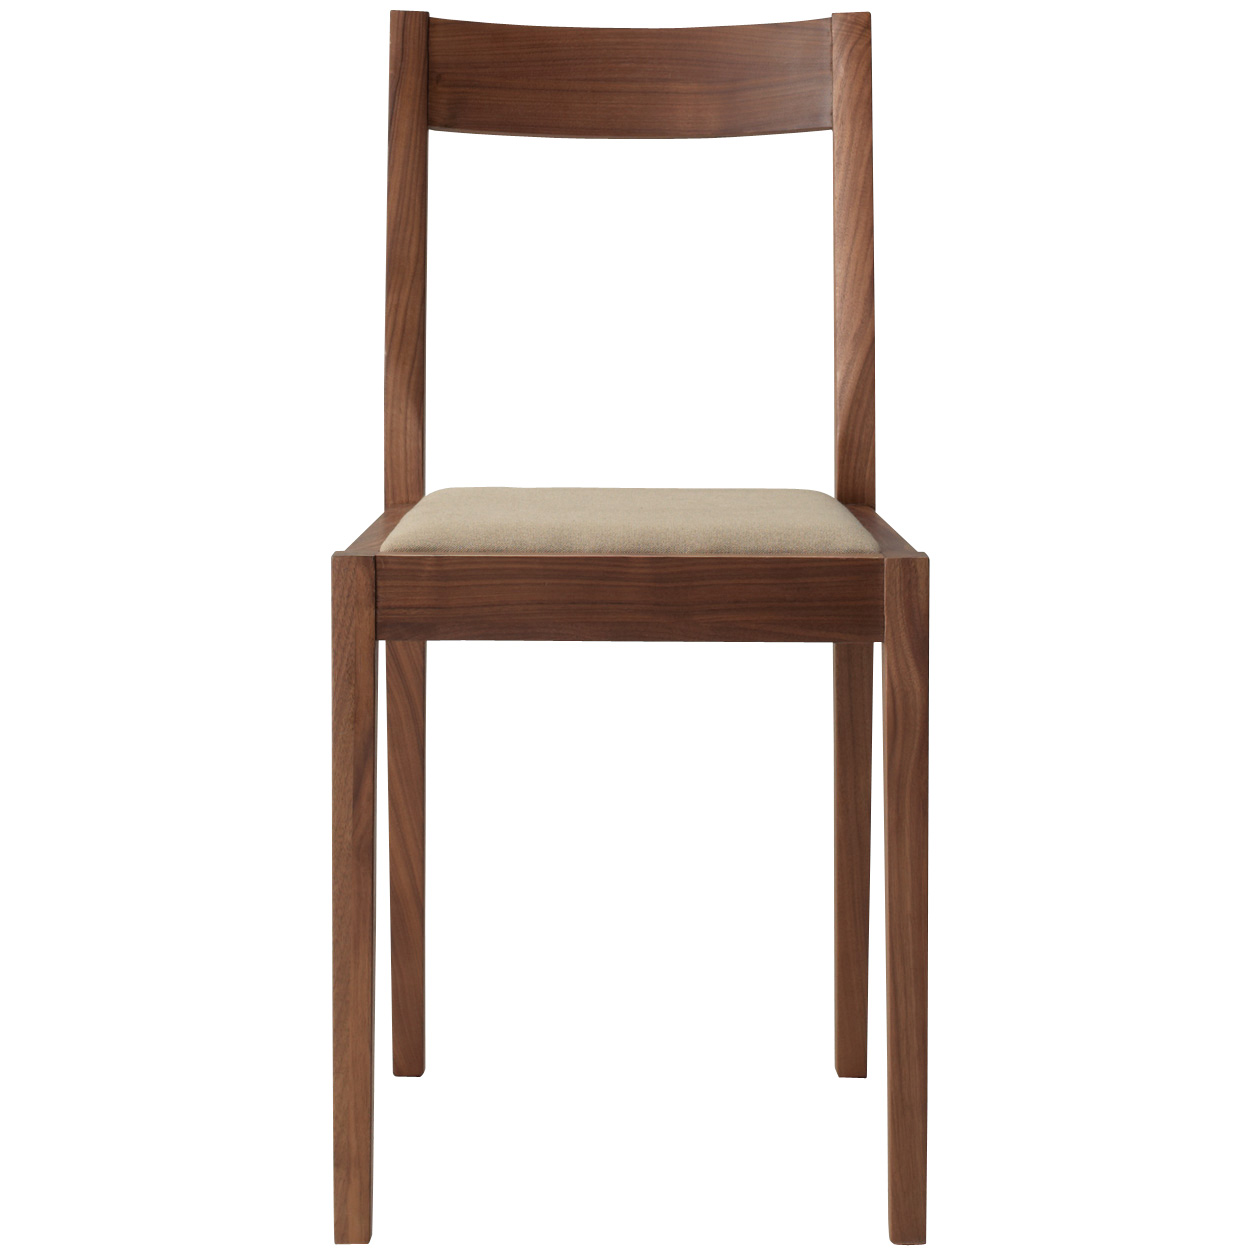 Walnut Wood Chair with Seat Cushion